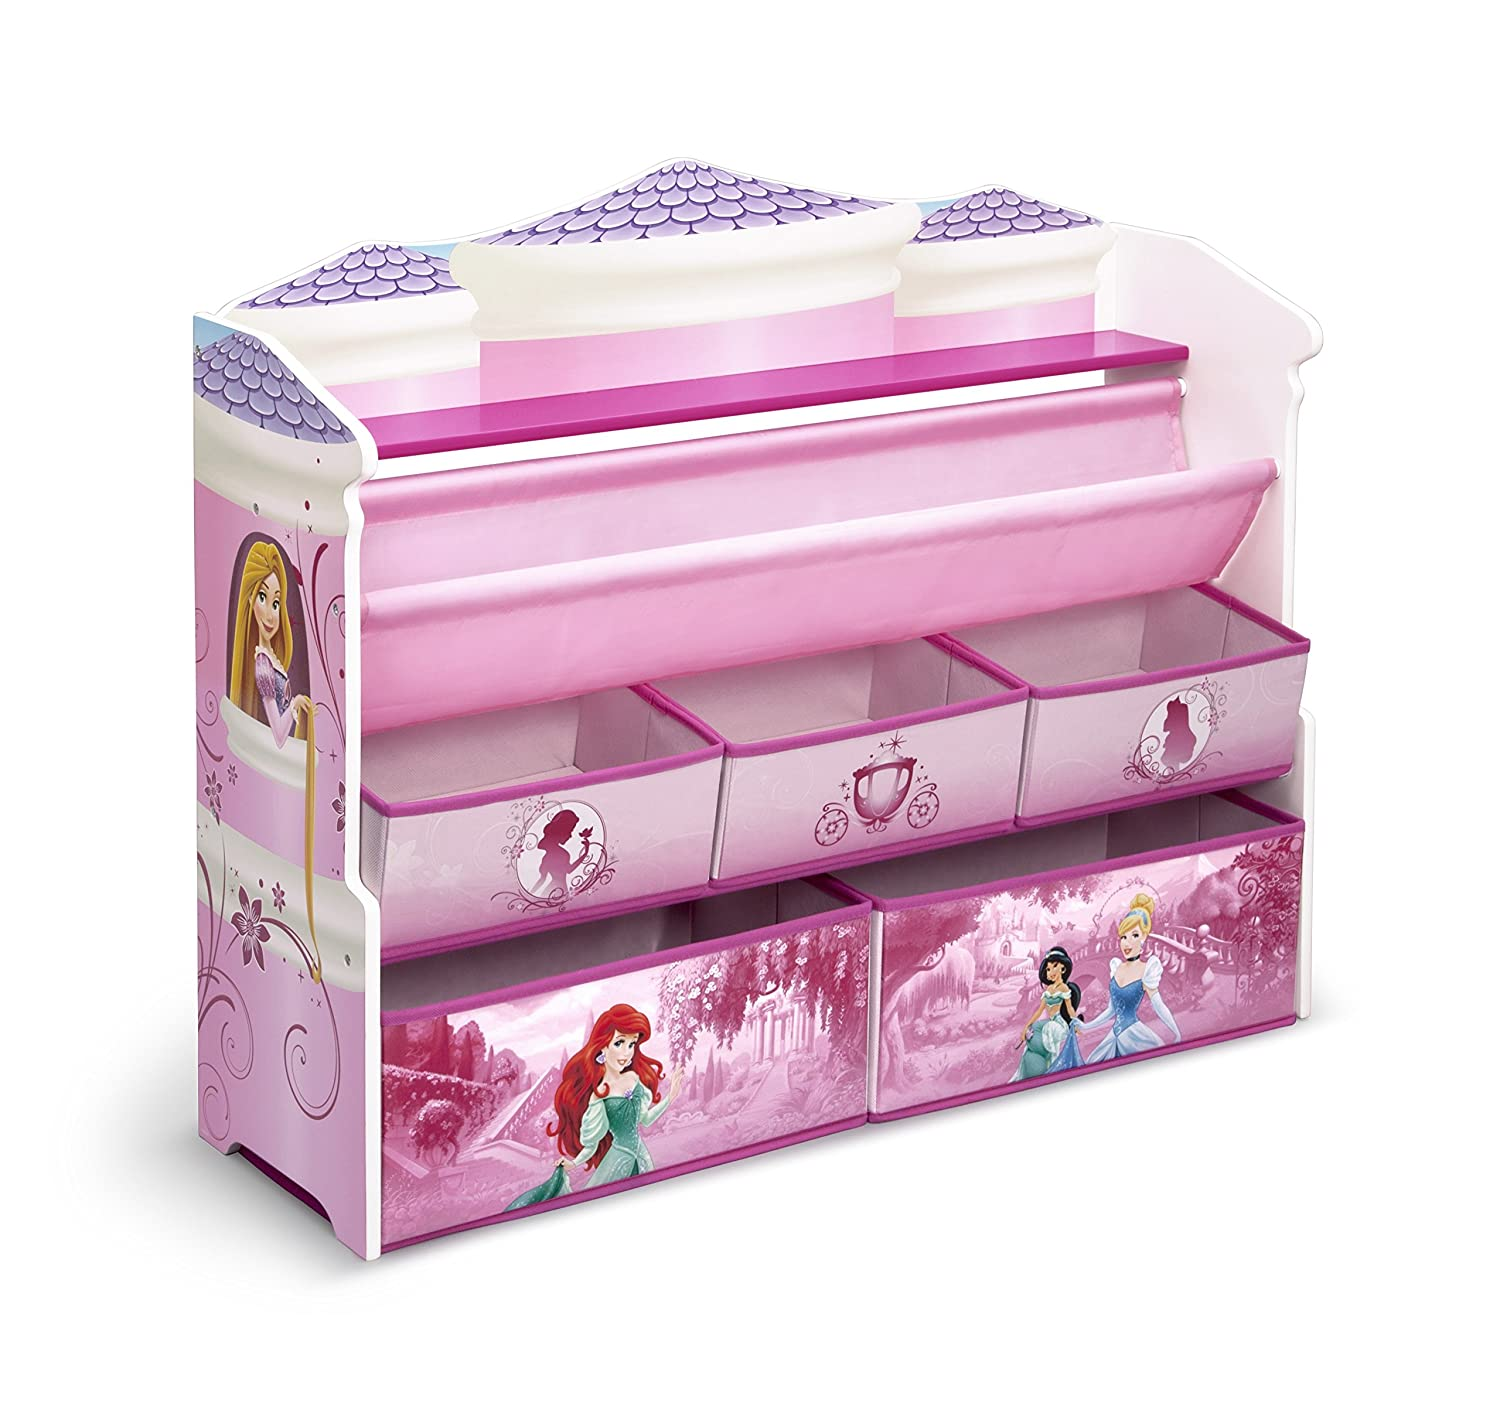 Book Toy Storage Organizer Disney Princess Kids Girls Room Shelf Bins ...